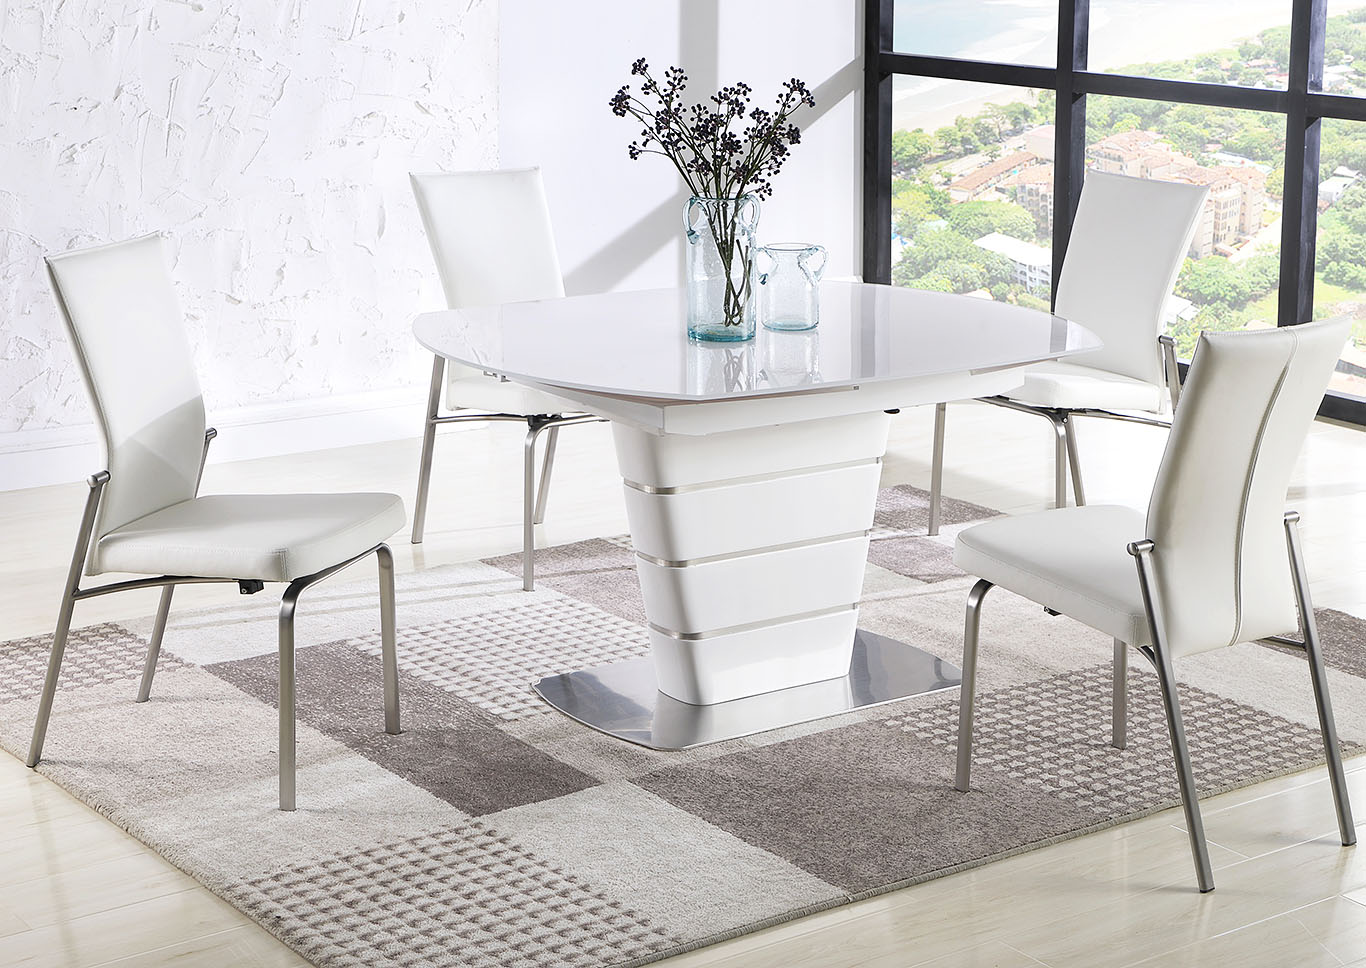 Charlotte-Molly White Dining Table w/4 Side Chairs,Chintaly Imports